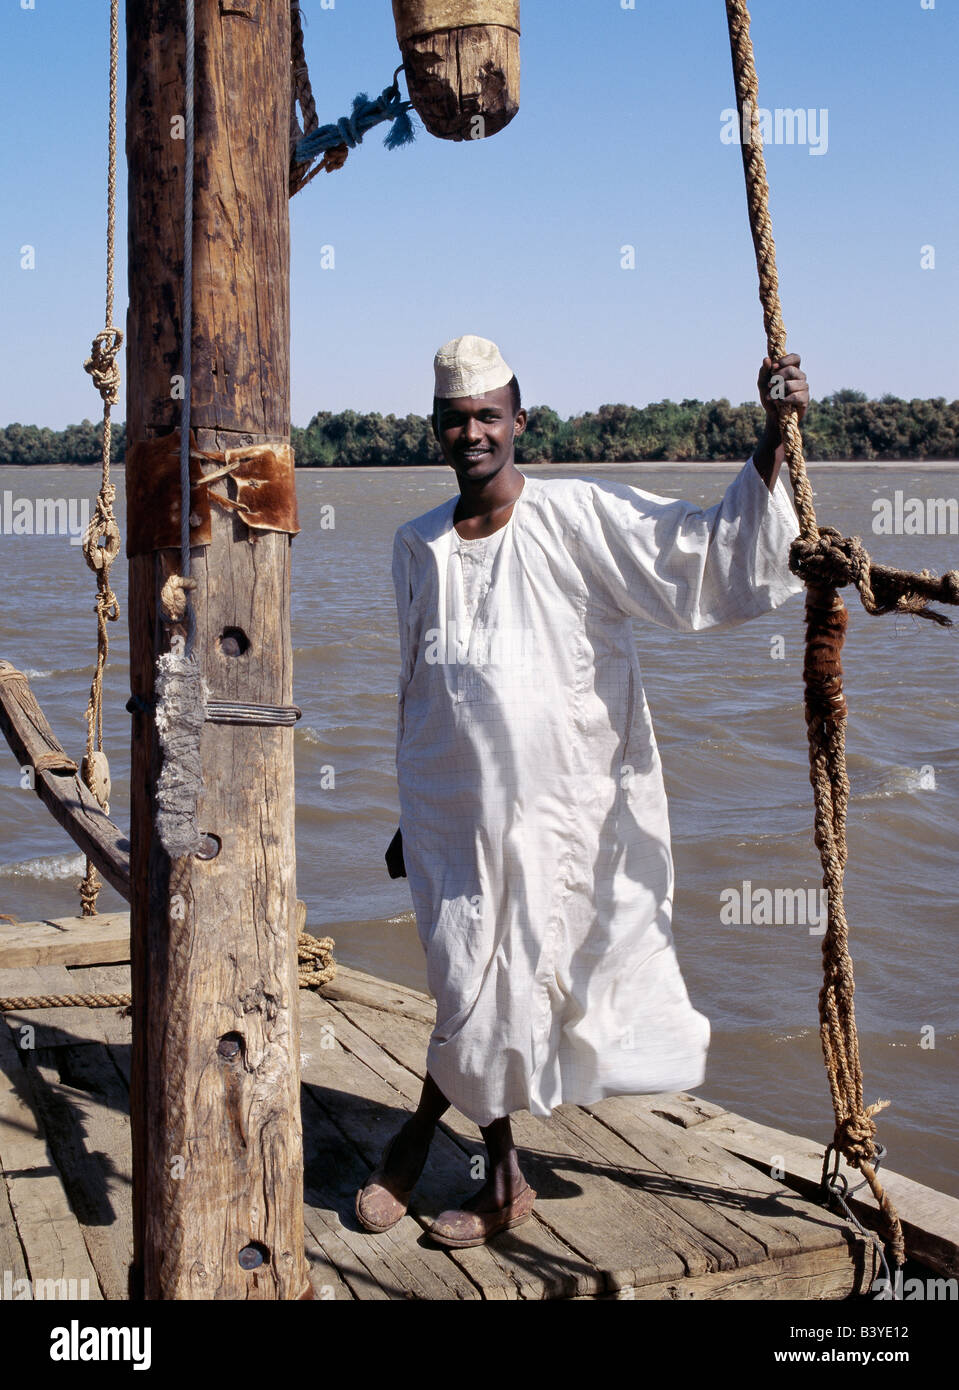 Sudan, Delgo. A Nubian boatman on his felucca, a wooden sailing boat that plies the waters of the River Nile in - Stock Image